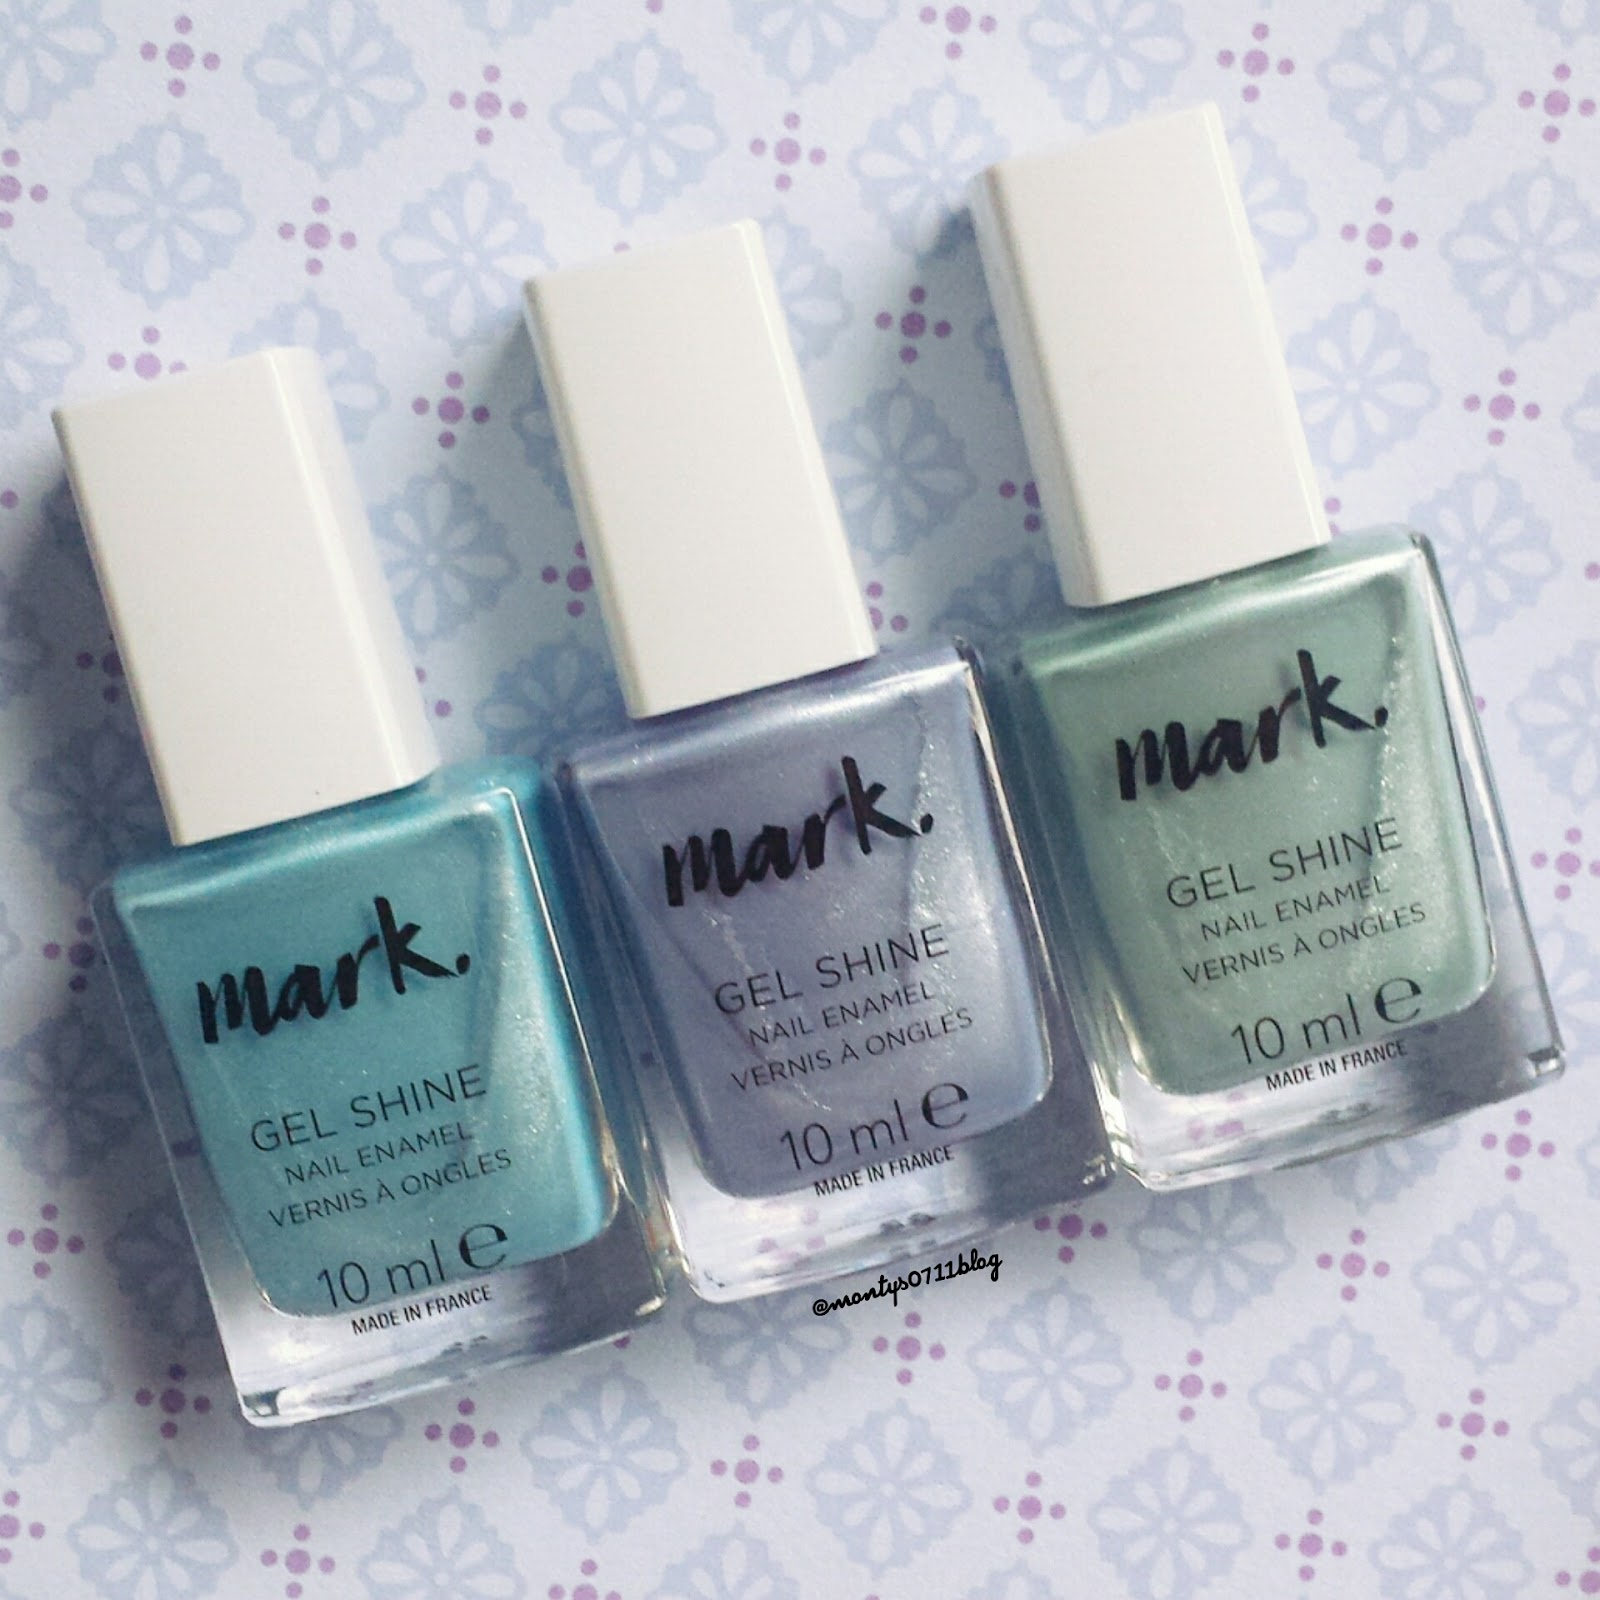 montys0711blog: Avon Gel Shine Nagellack Pastell Swatches